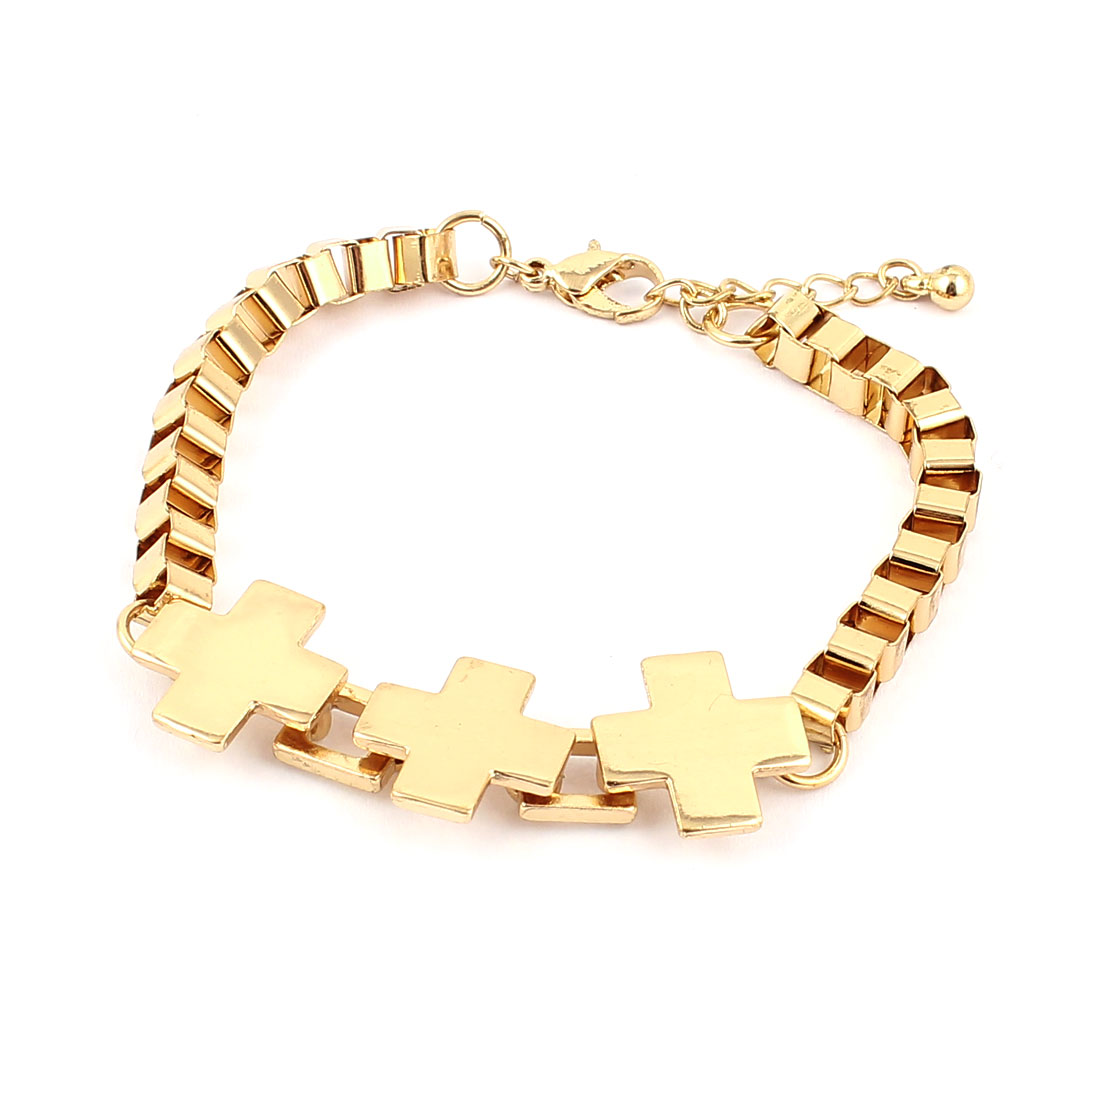 Unisex Gold Tone Metal The Cross Detail Adjustable Chain Wrist Decoration Bracelet Bangle for Lady Women Men